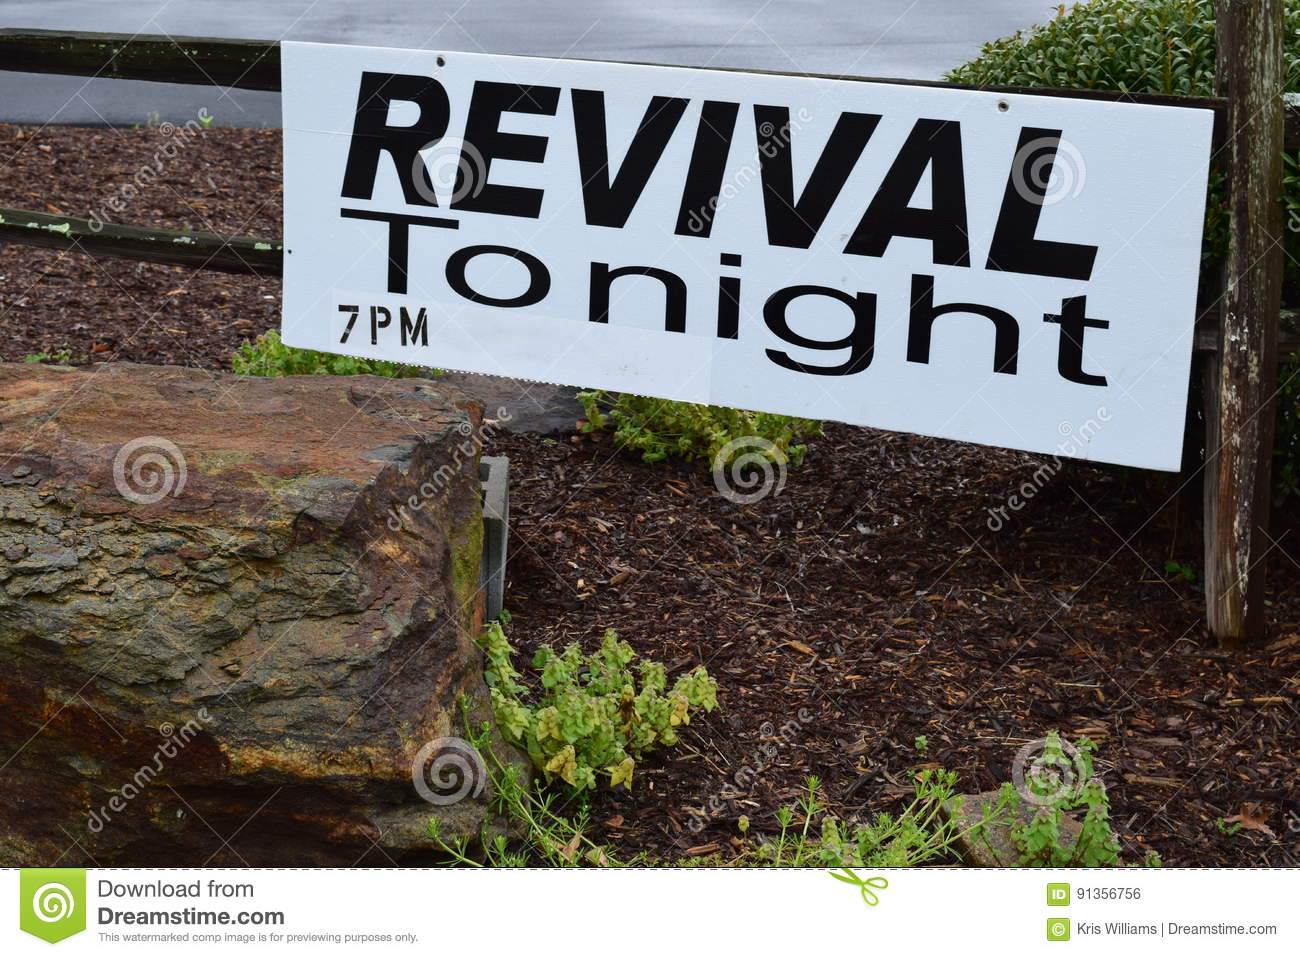 Revival Tonight 7PM Sign